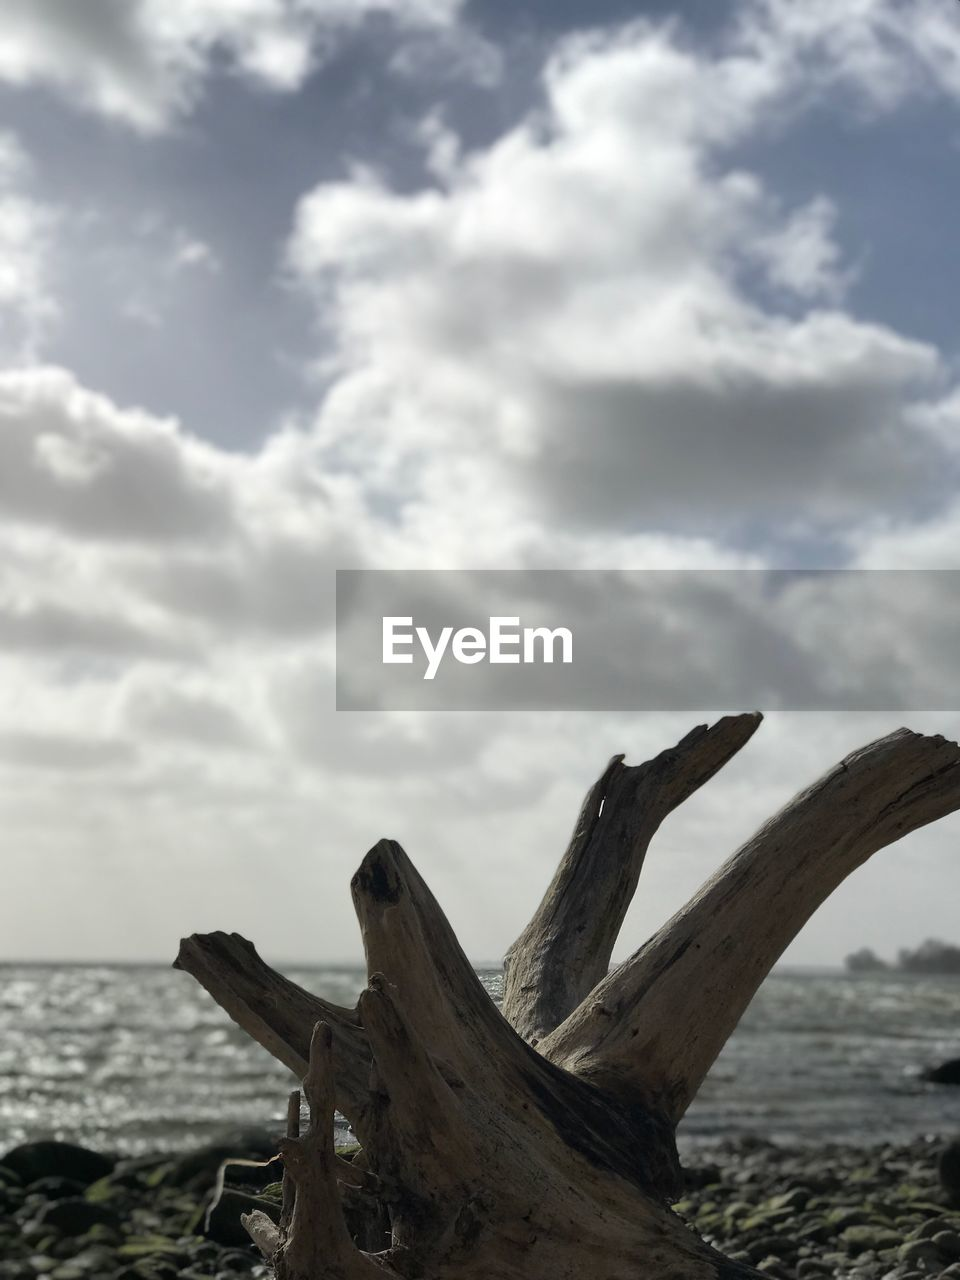 cloud - sky, sky, nature, water, day, no people, beauty in nature, tranquility, wood - material, land, sea, beach, scenics - nature, driftwood, tranquil scene, tree, wood, outdoors, non-urban scene